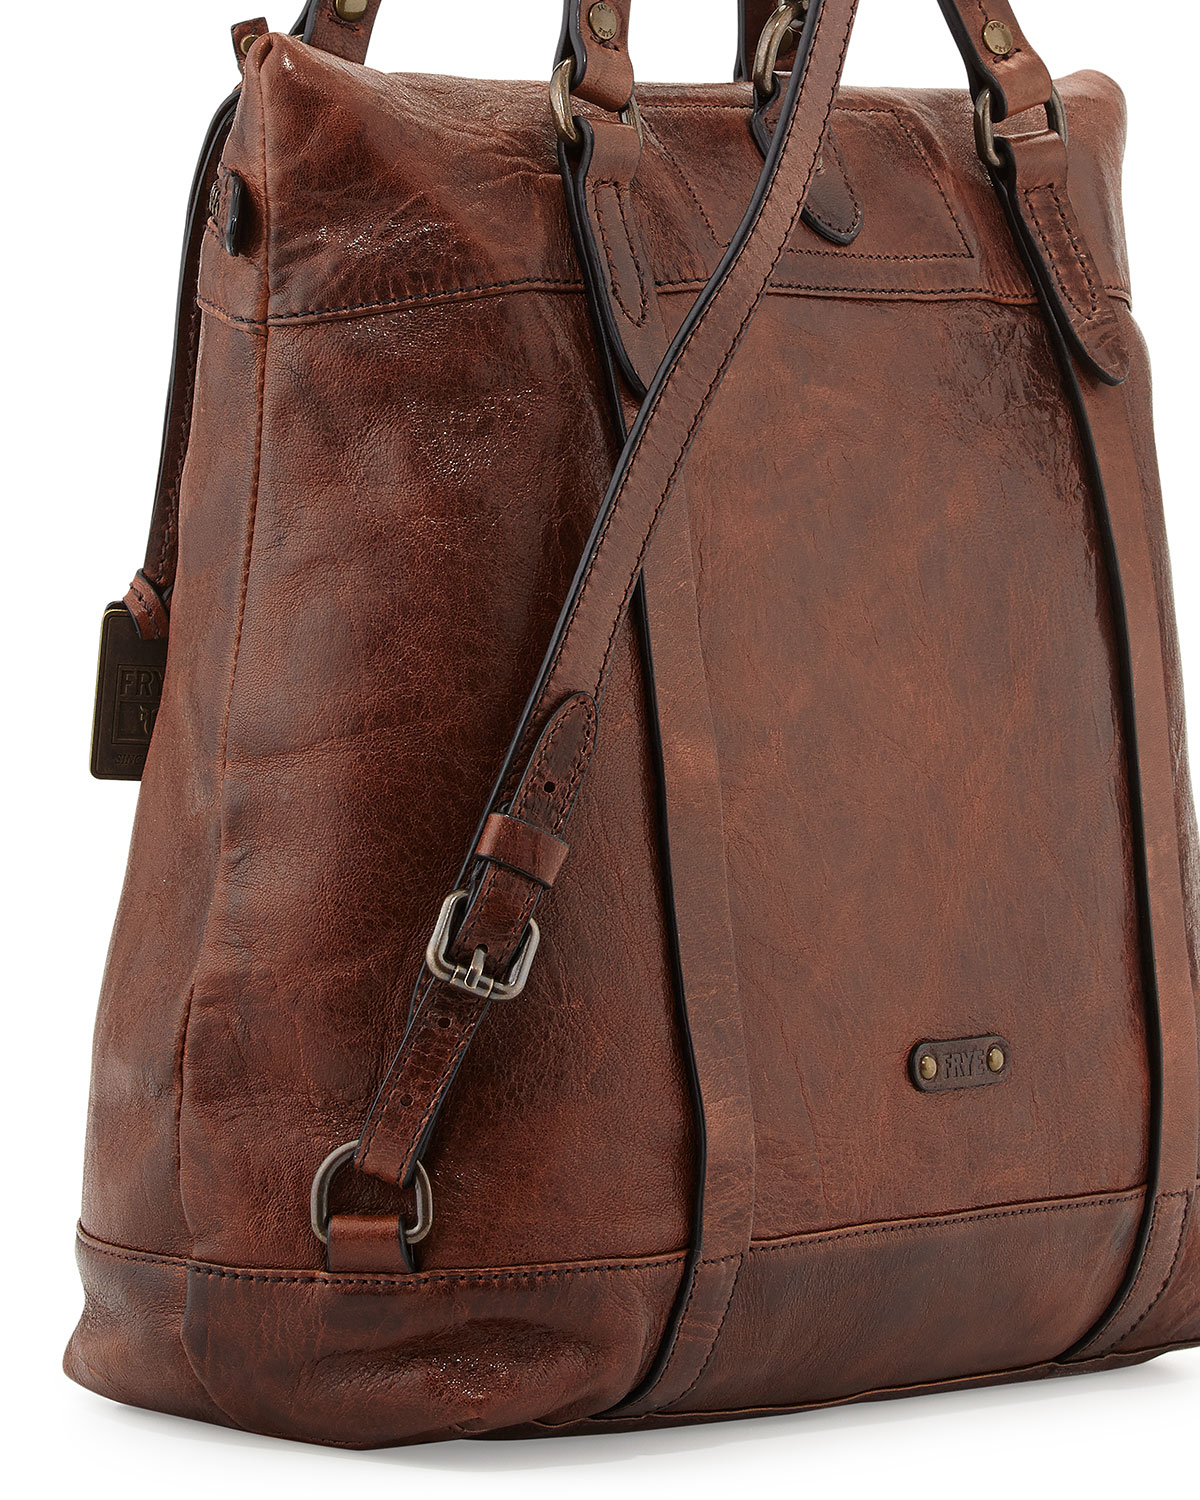 Leather Tote Backpack YLarb1Zl